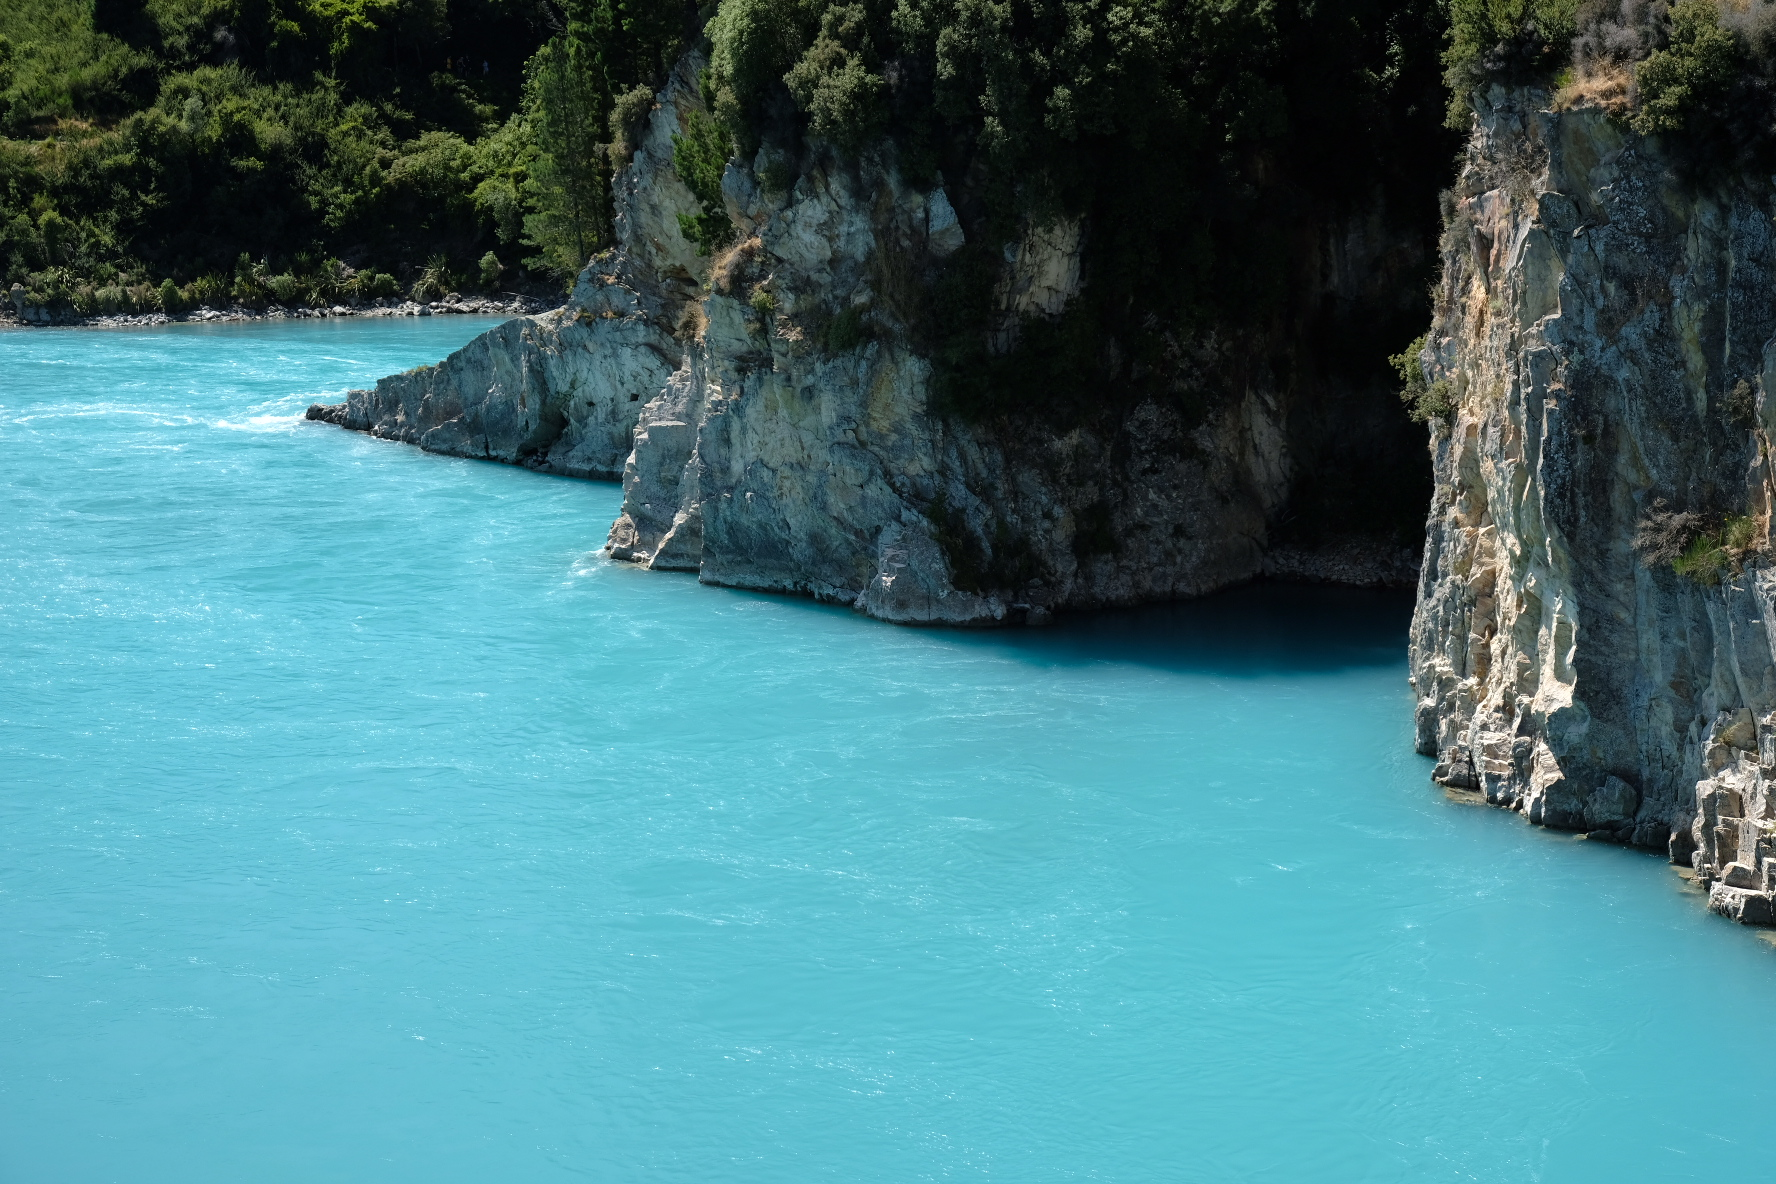 We now know all about interesting geological strata in the Rakaia Gorge